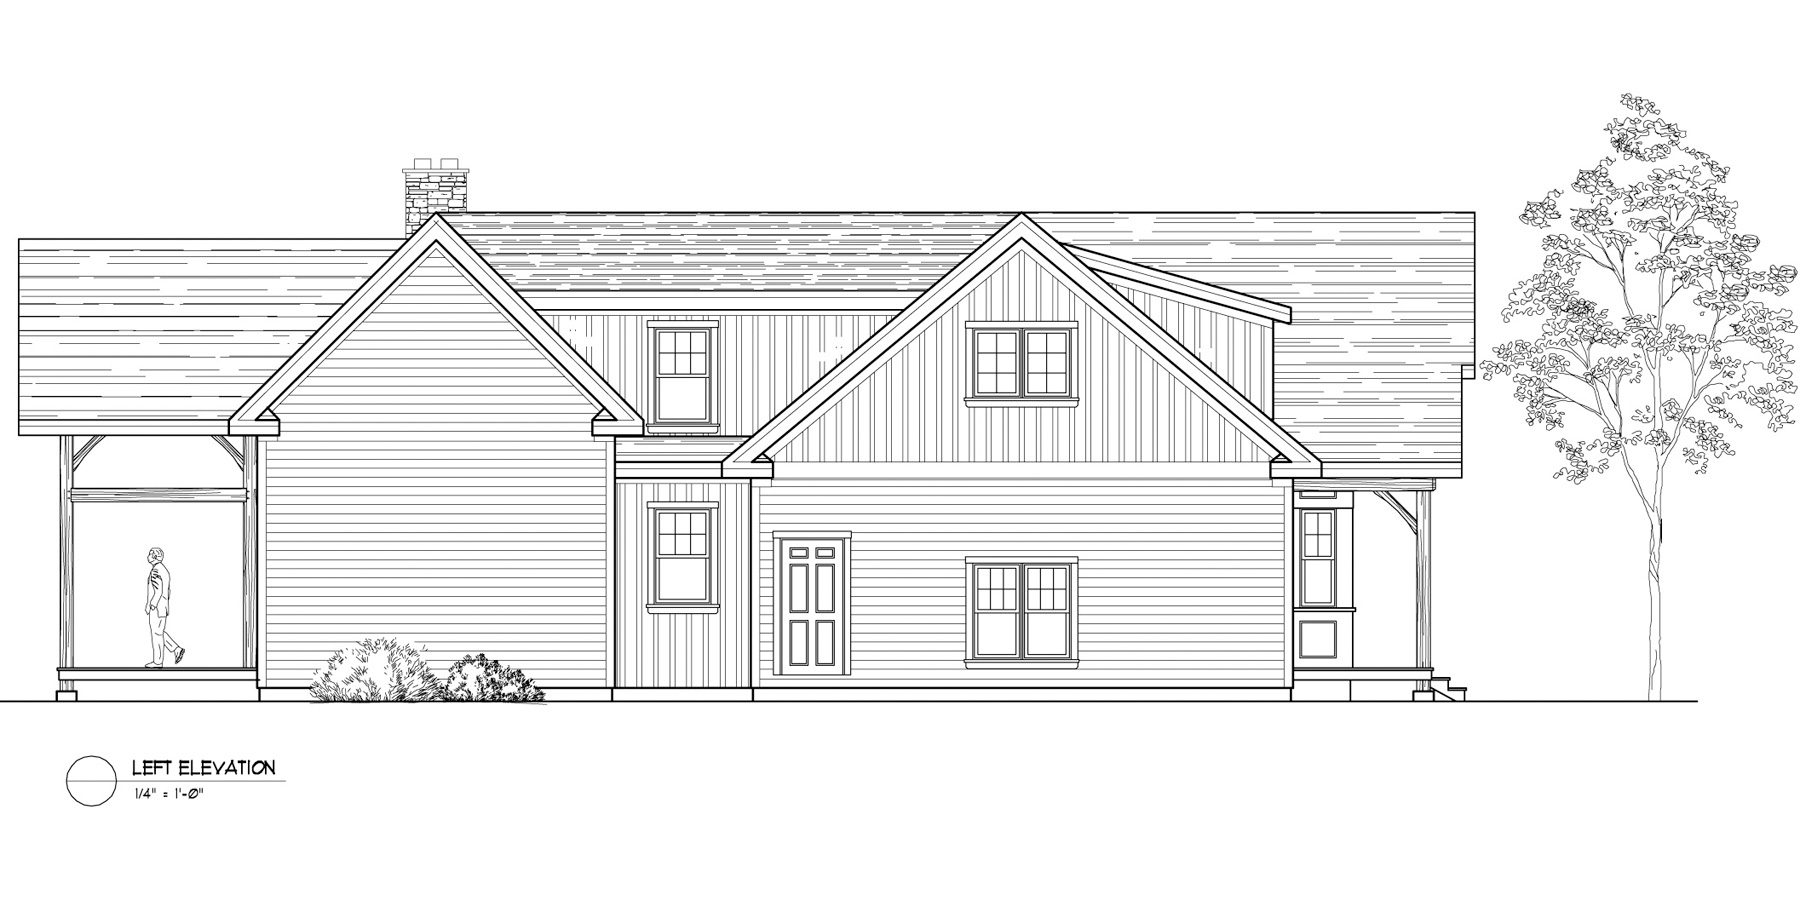 Normerica Timber Frames, House Plan, The Birches 3532, Left Elevation